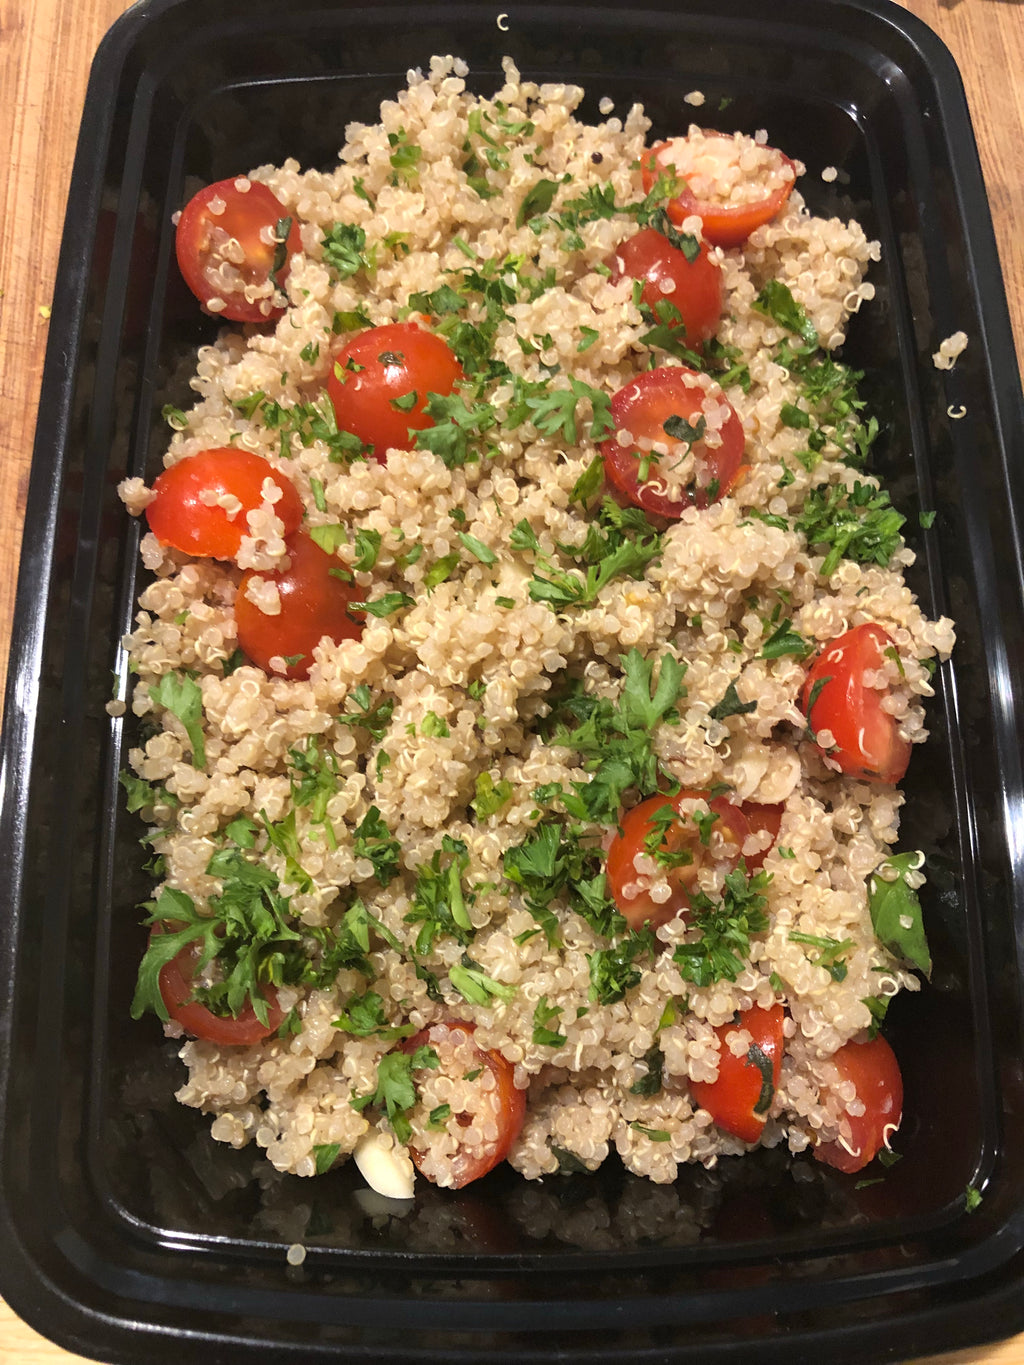 16 oz Quinoa with Lemon Basil and Cherry Tomatoes